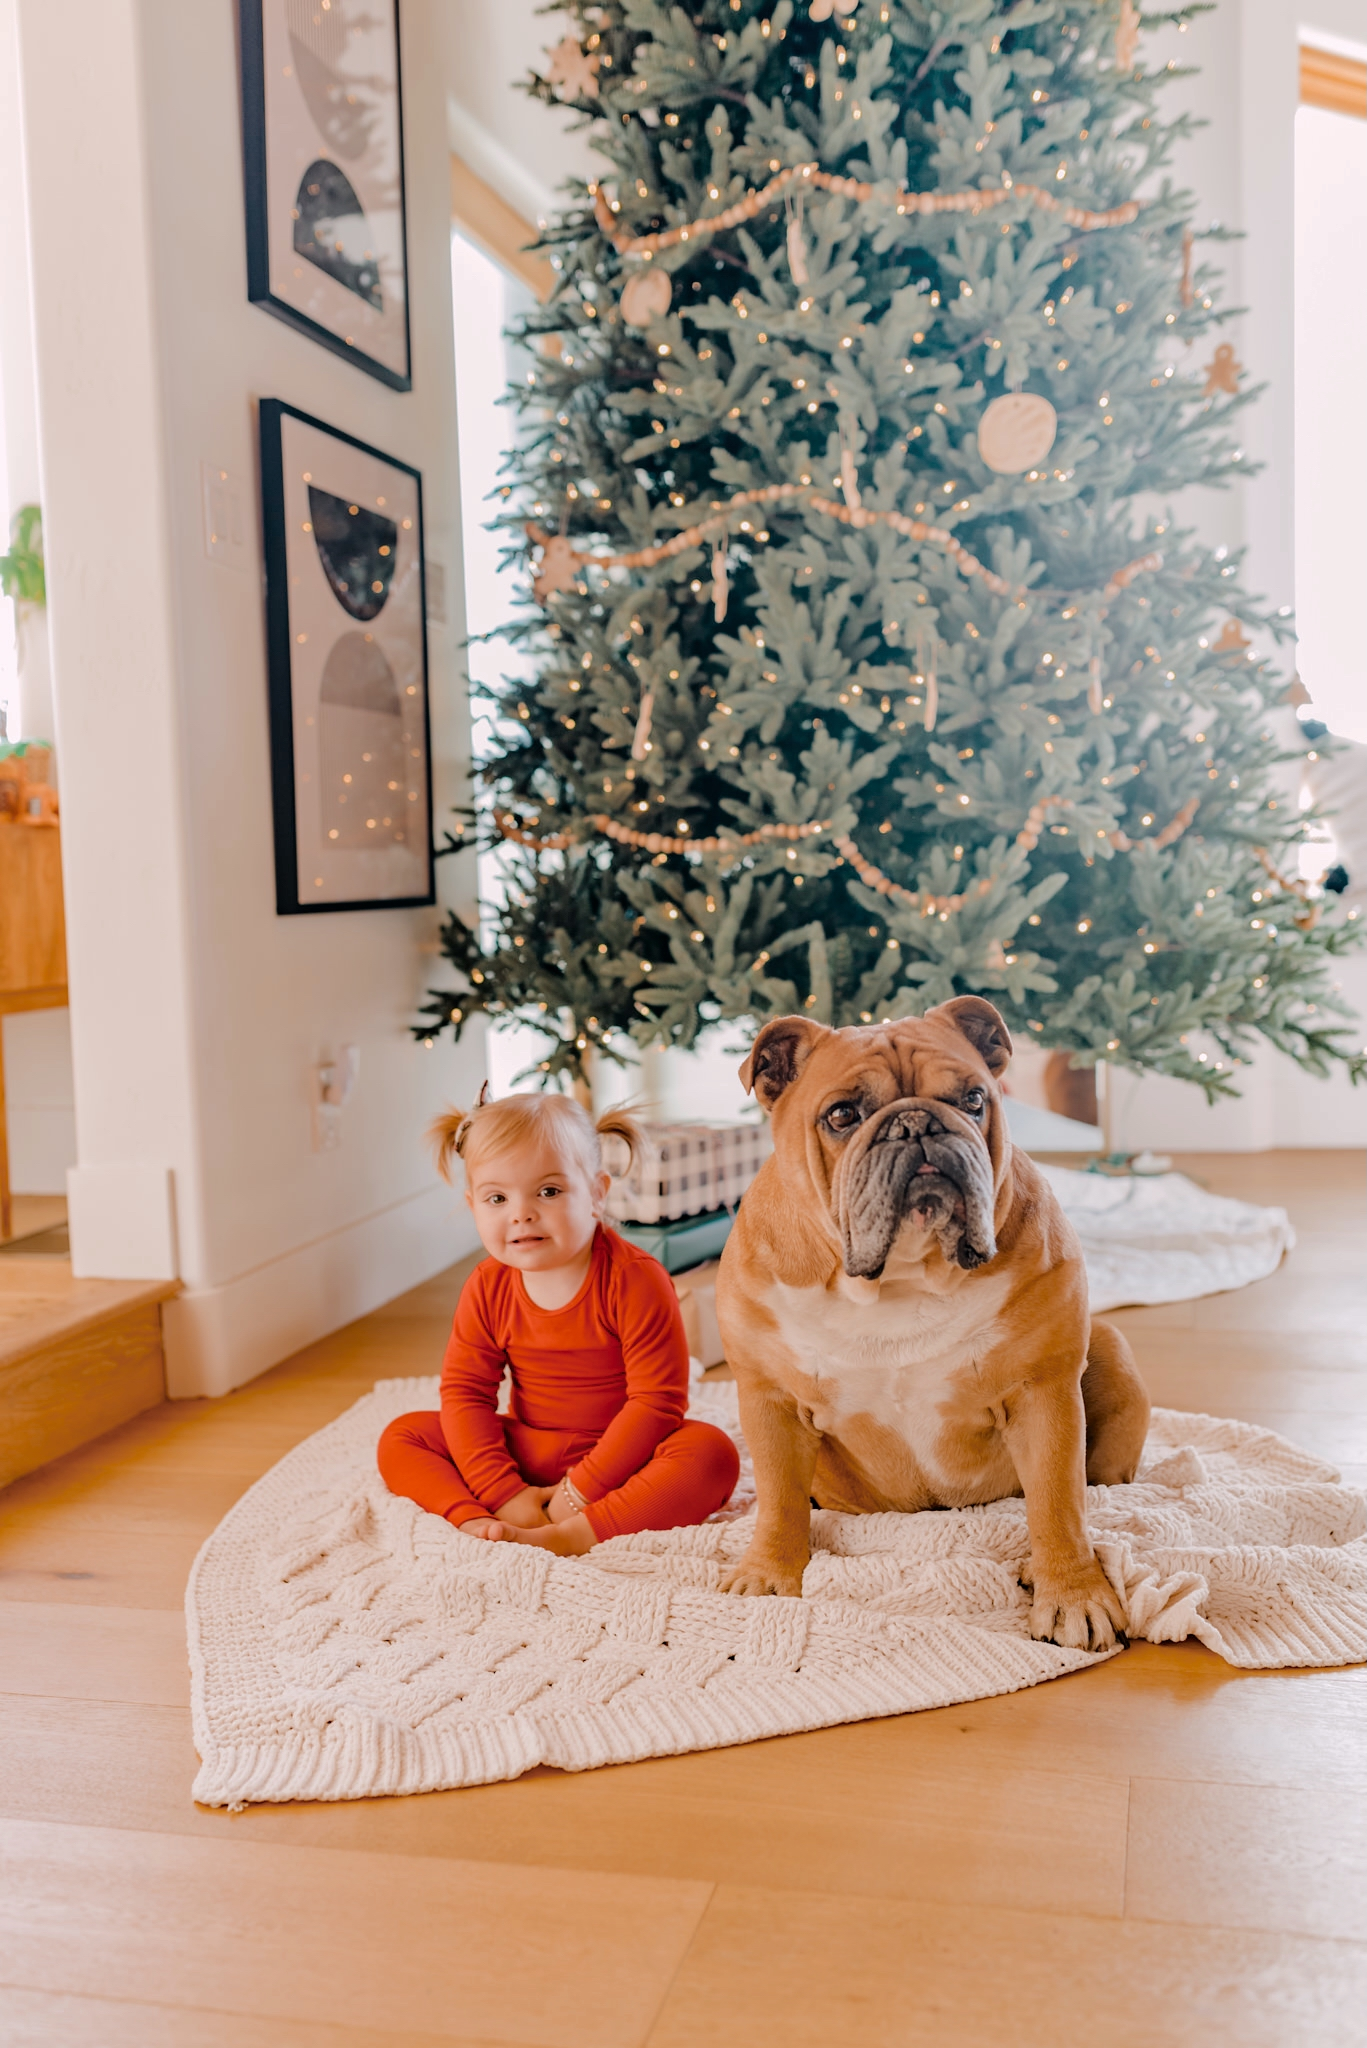 Stocking Stuffers for the Entire Family - Navy Grace - Camilla Thurman |Stocking Stuffers by popular San Diego life and style blog, Navy Grace: image of a little girl wearing red pajamas and sitting on a knit blanket in front of a Christmas tree with her dog.